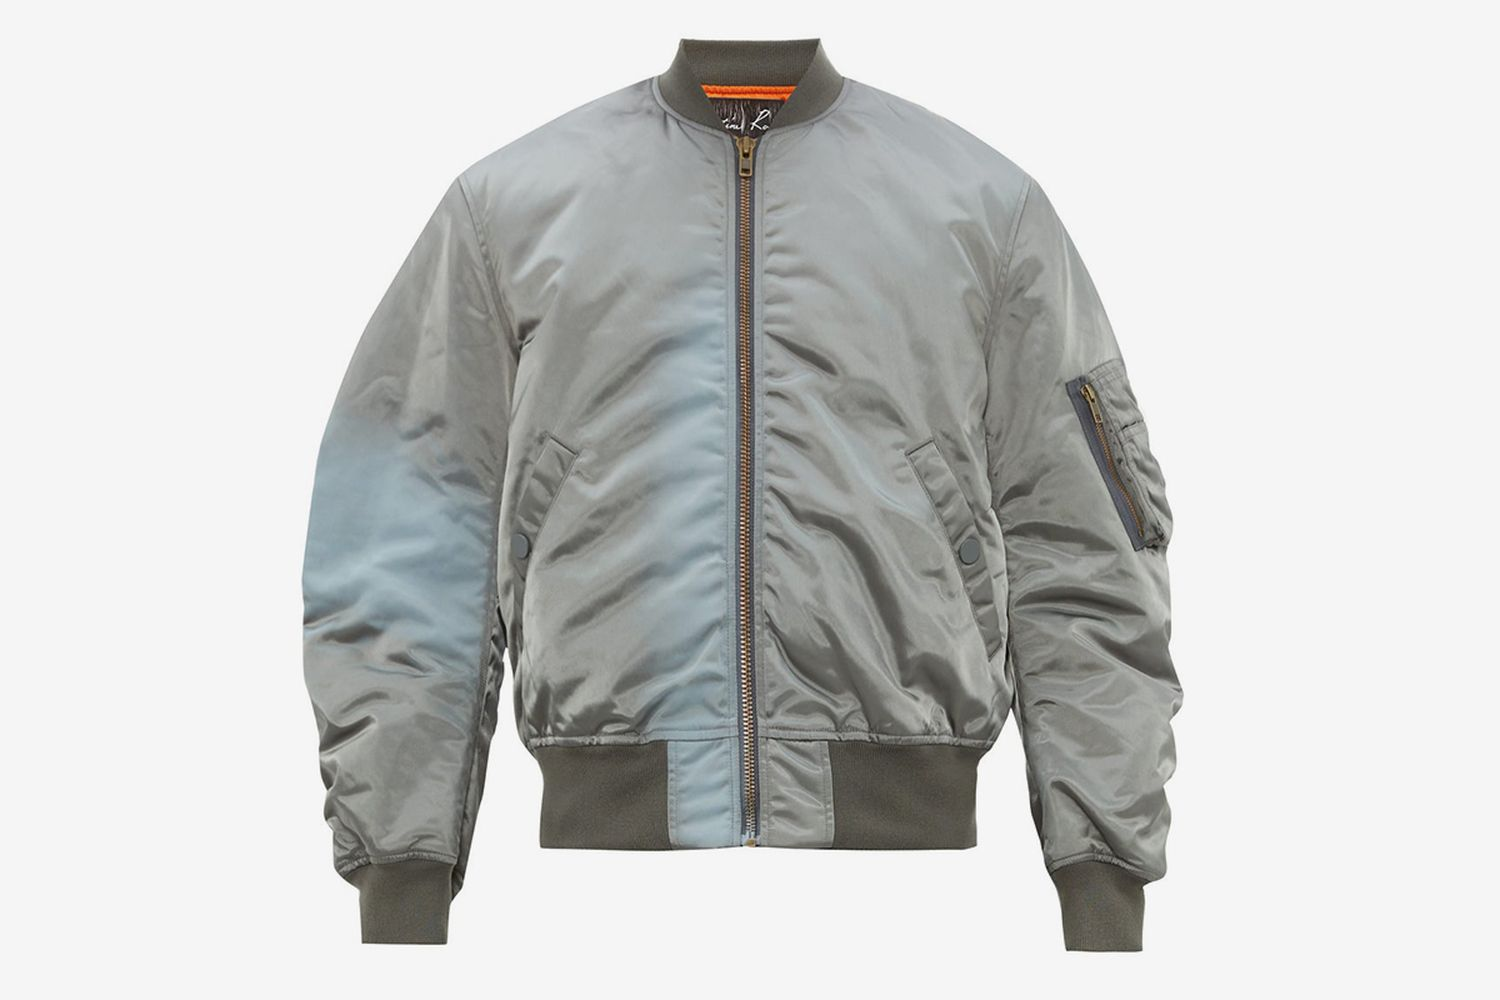 Gradient MA-1 Bomber Jacket